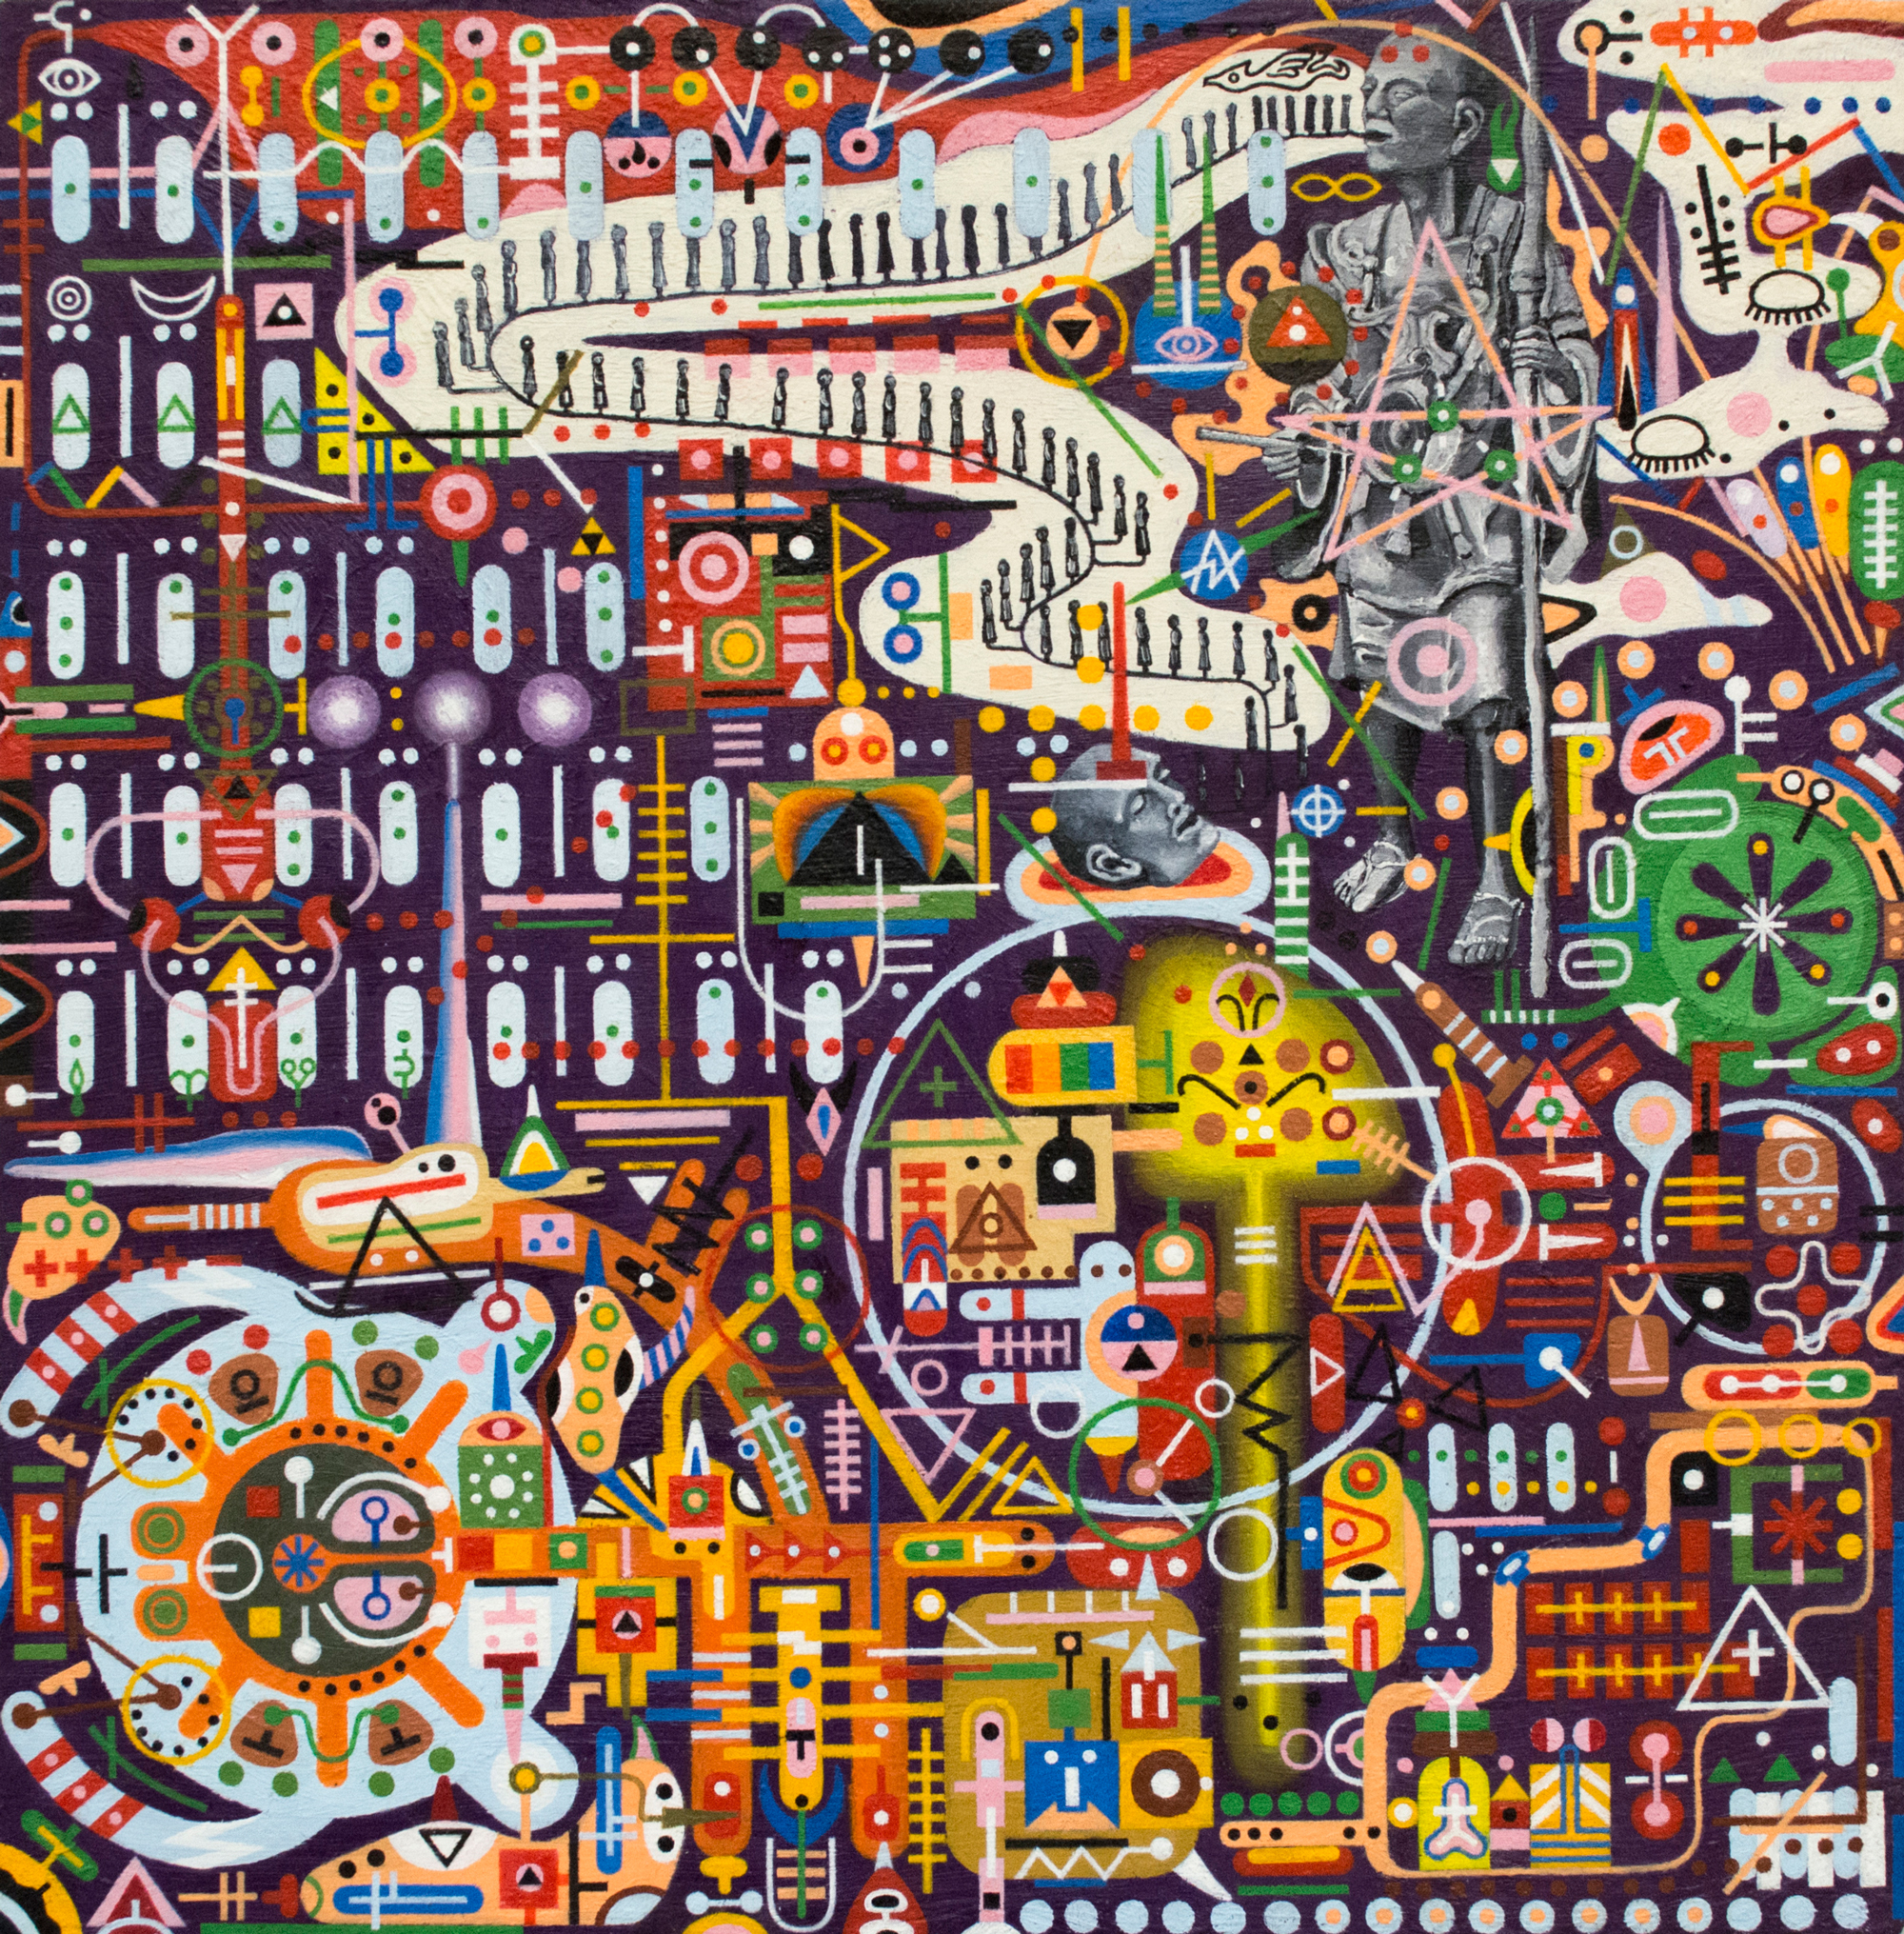 """Lobotomy of the Ghost Mechanics – Scarab Timetable,2004-2007. 11"""" x 11"""" Oil on panel. Collection of Kathy Butterly and Tom Burckhardt."""